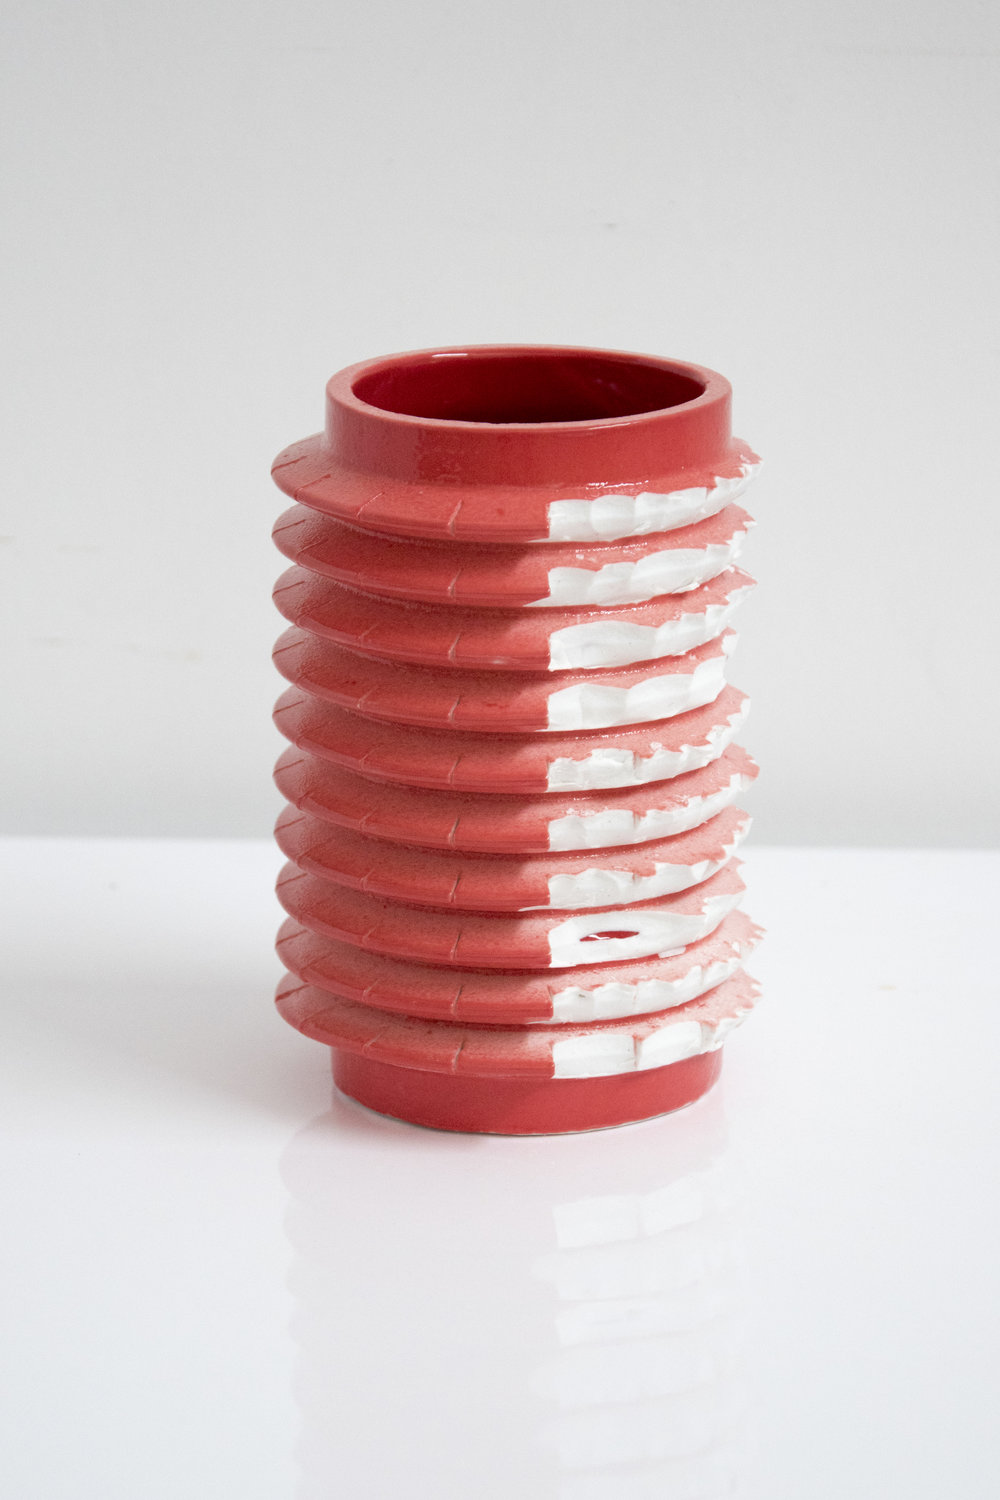 JDZ porcelain works - David Derksen04.jpg